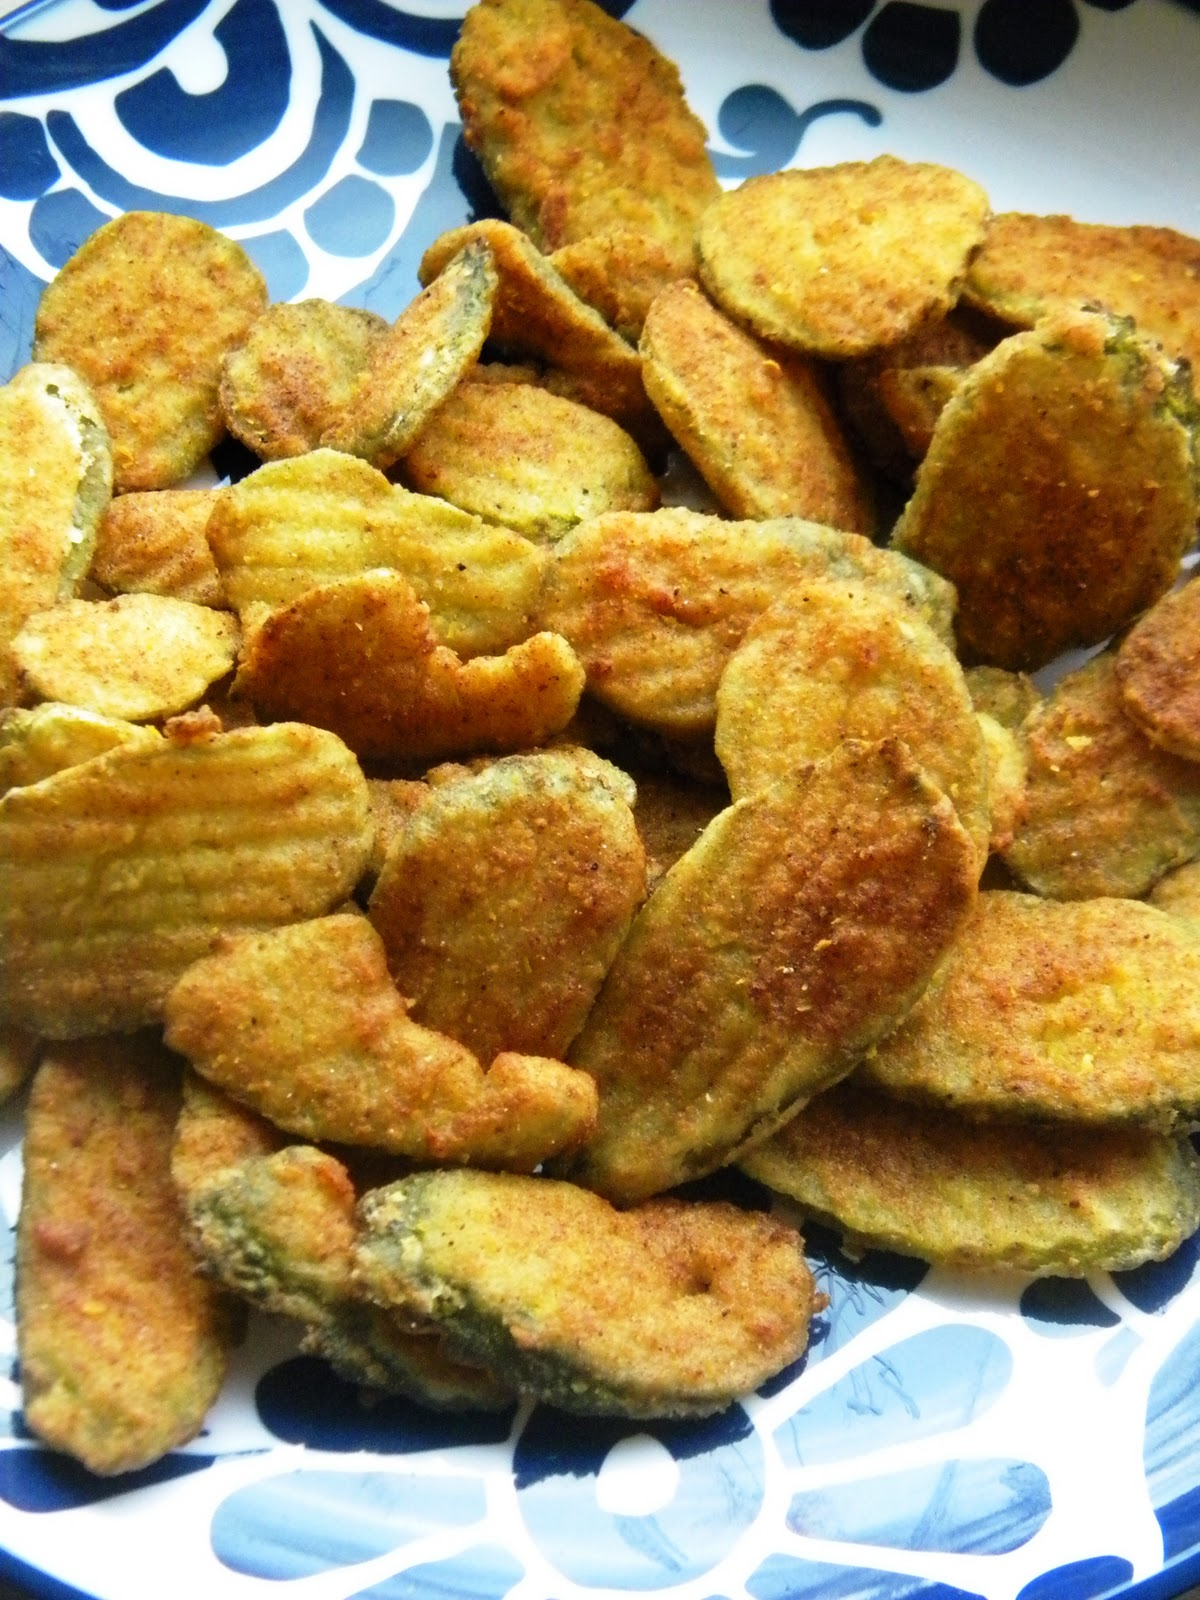 Special Edition Fat Tuesday Fried Pickles Amp The Homemade